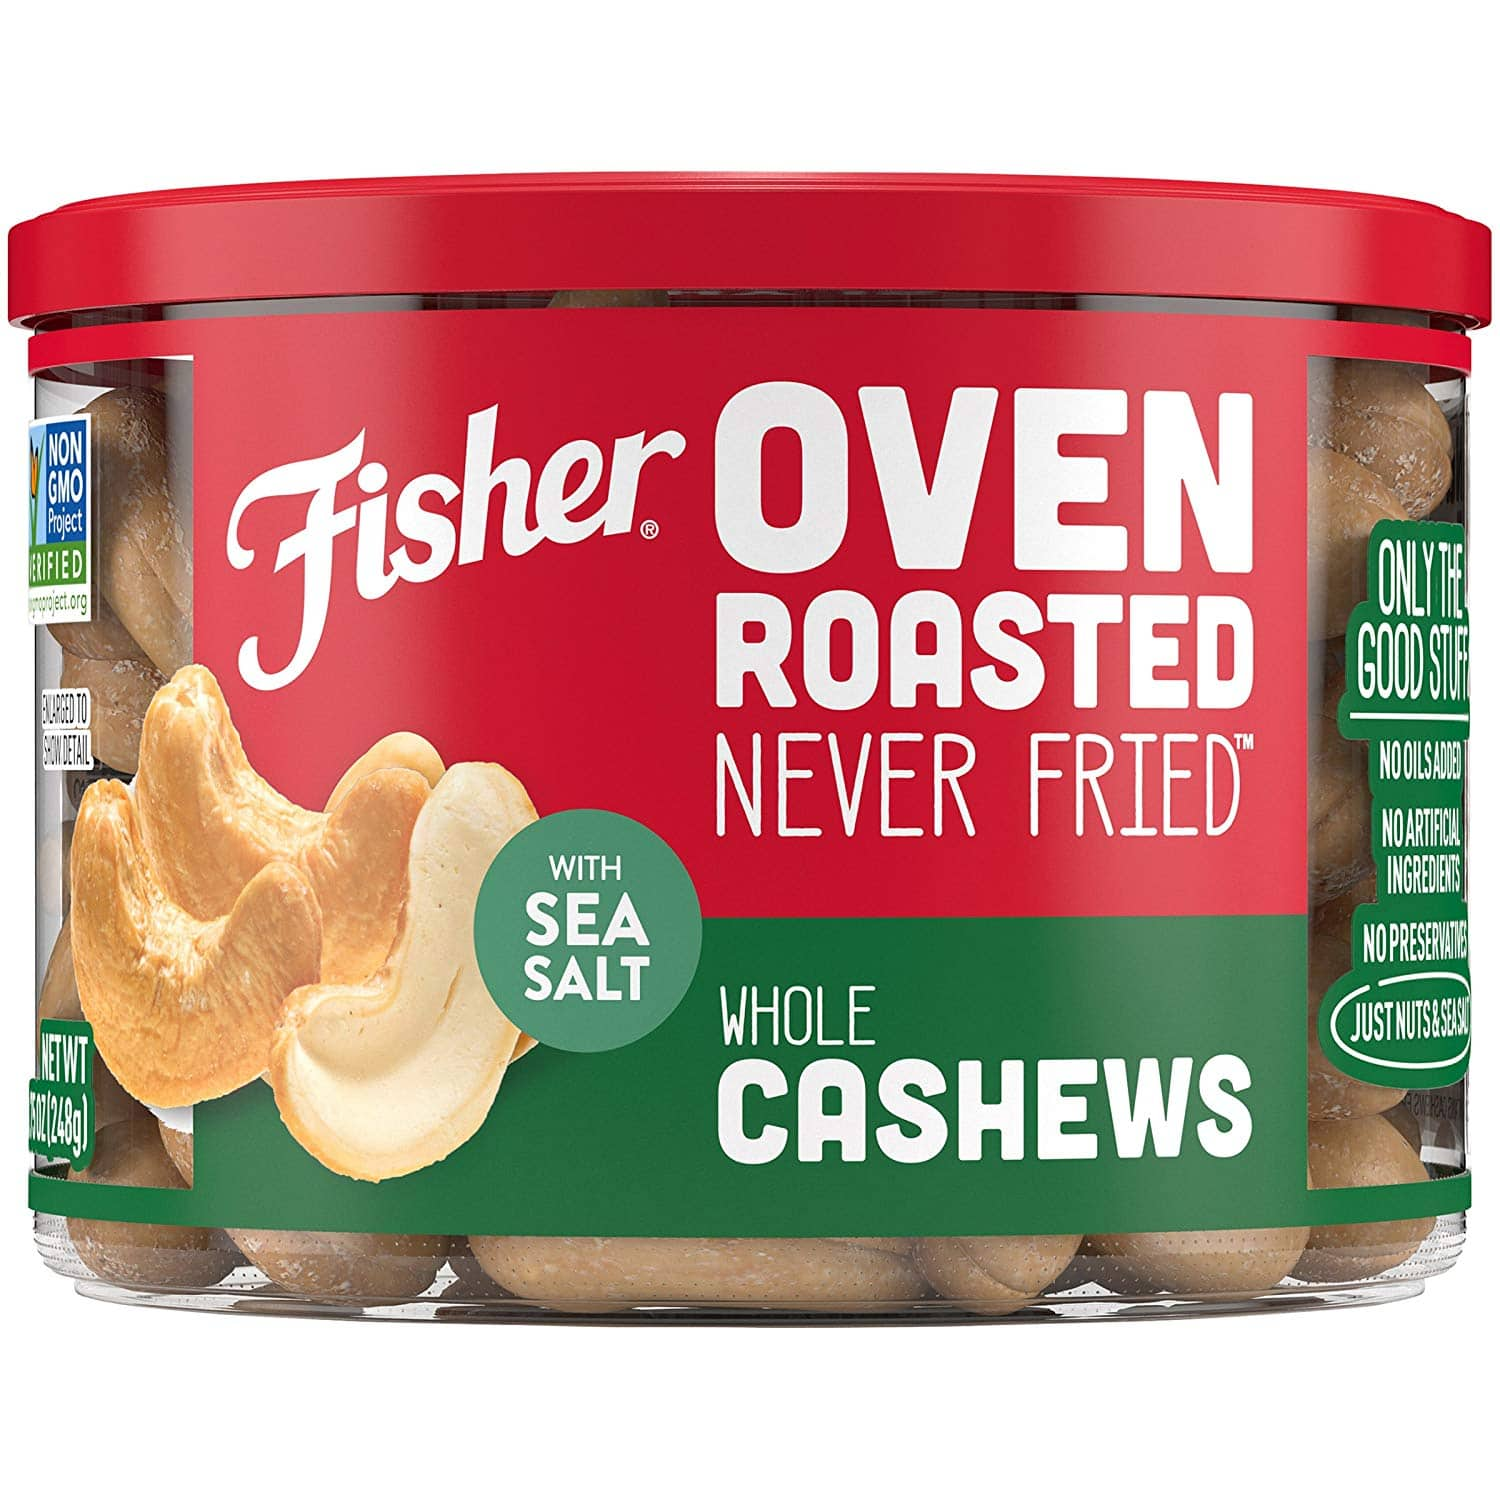 Save 34% on FISHER Oven Roasted Never Fried, Whole Cashews, Made with Sea Salt, 8.75 oz! $9.6